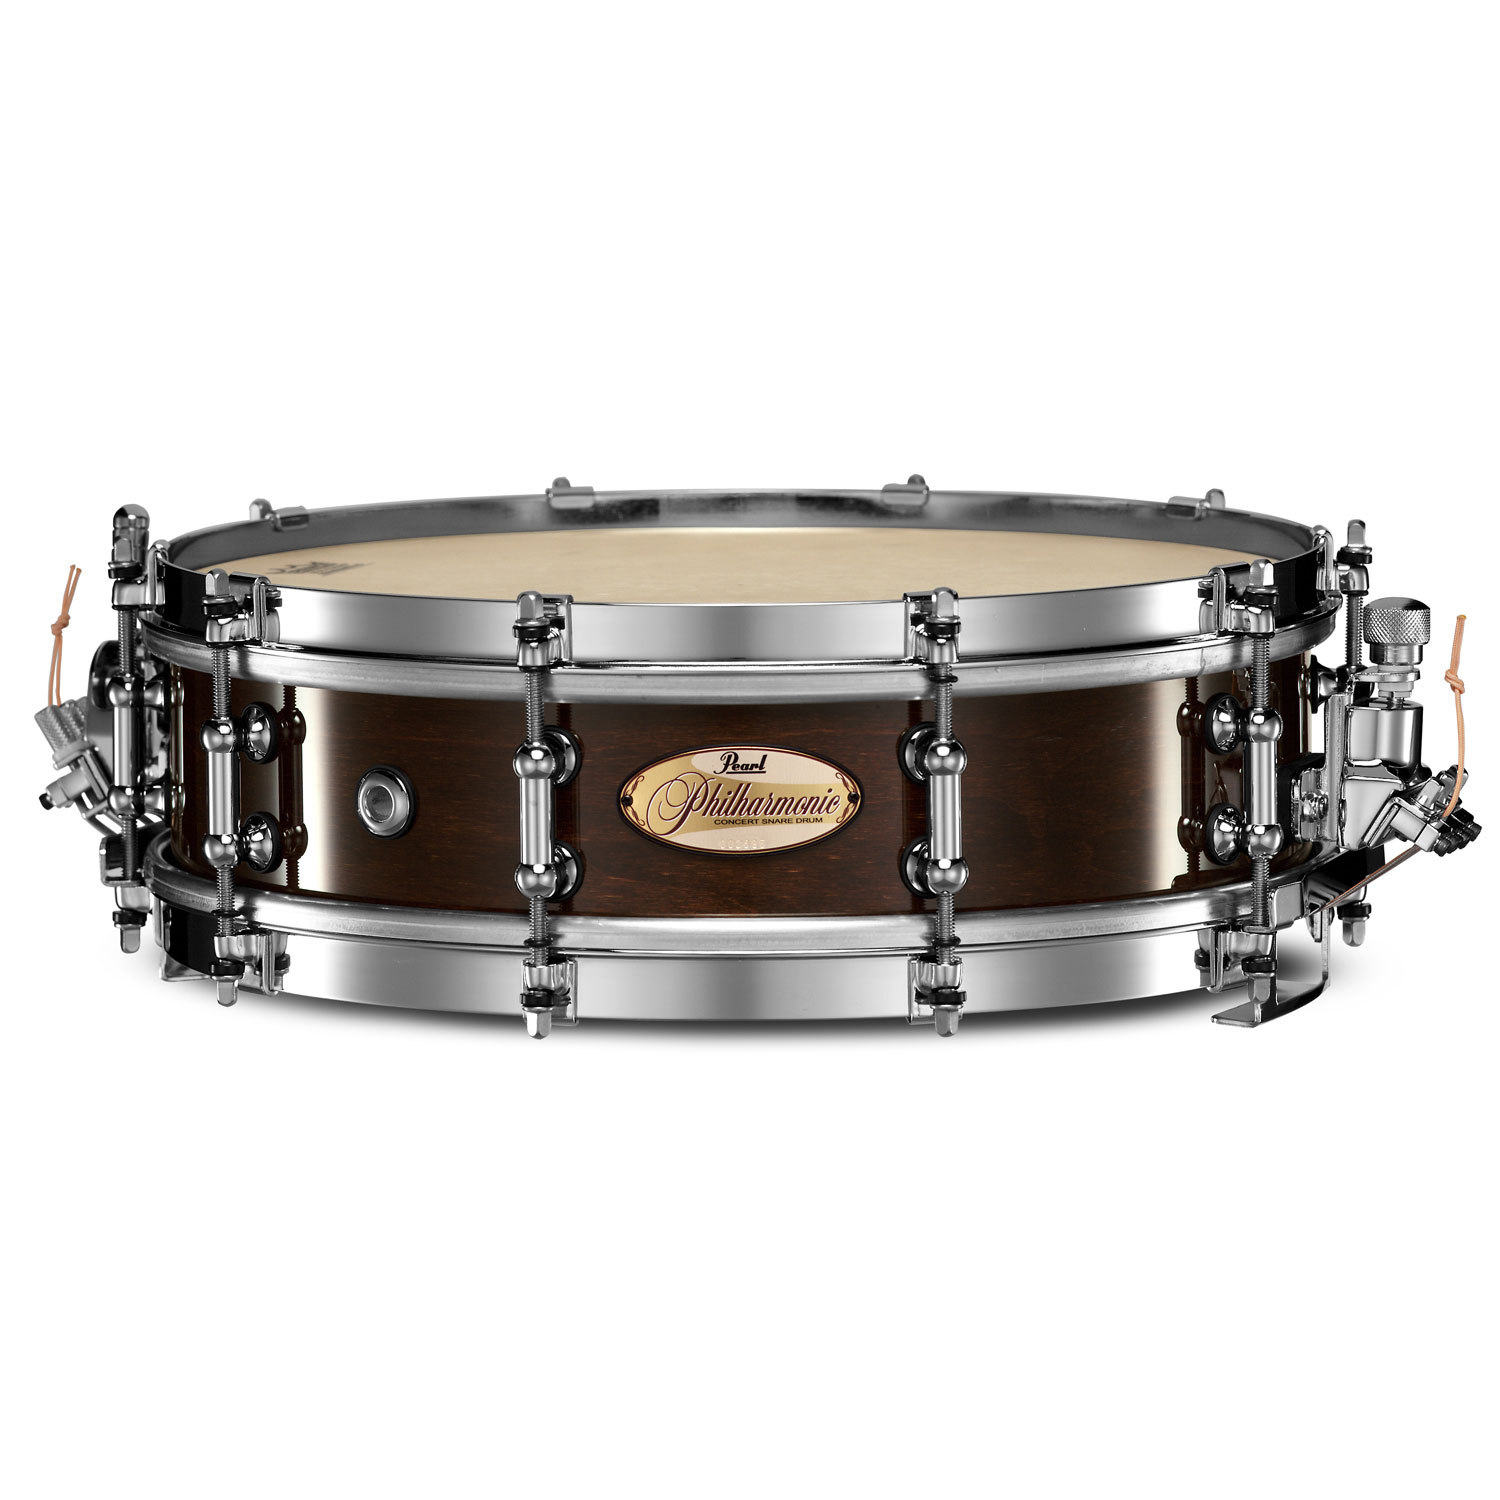 "Pearl 14"" x 4"" Philharmonic Maple Concert Snare Drum"